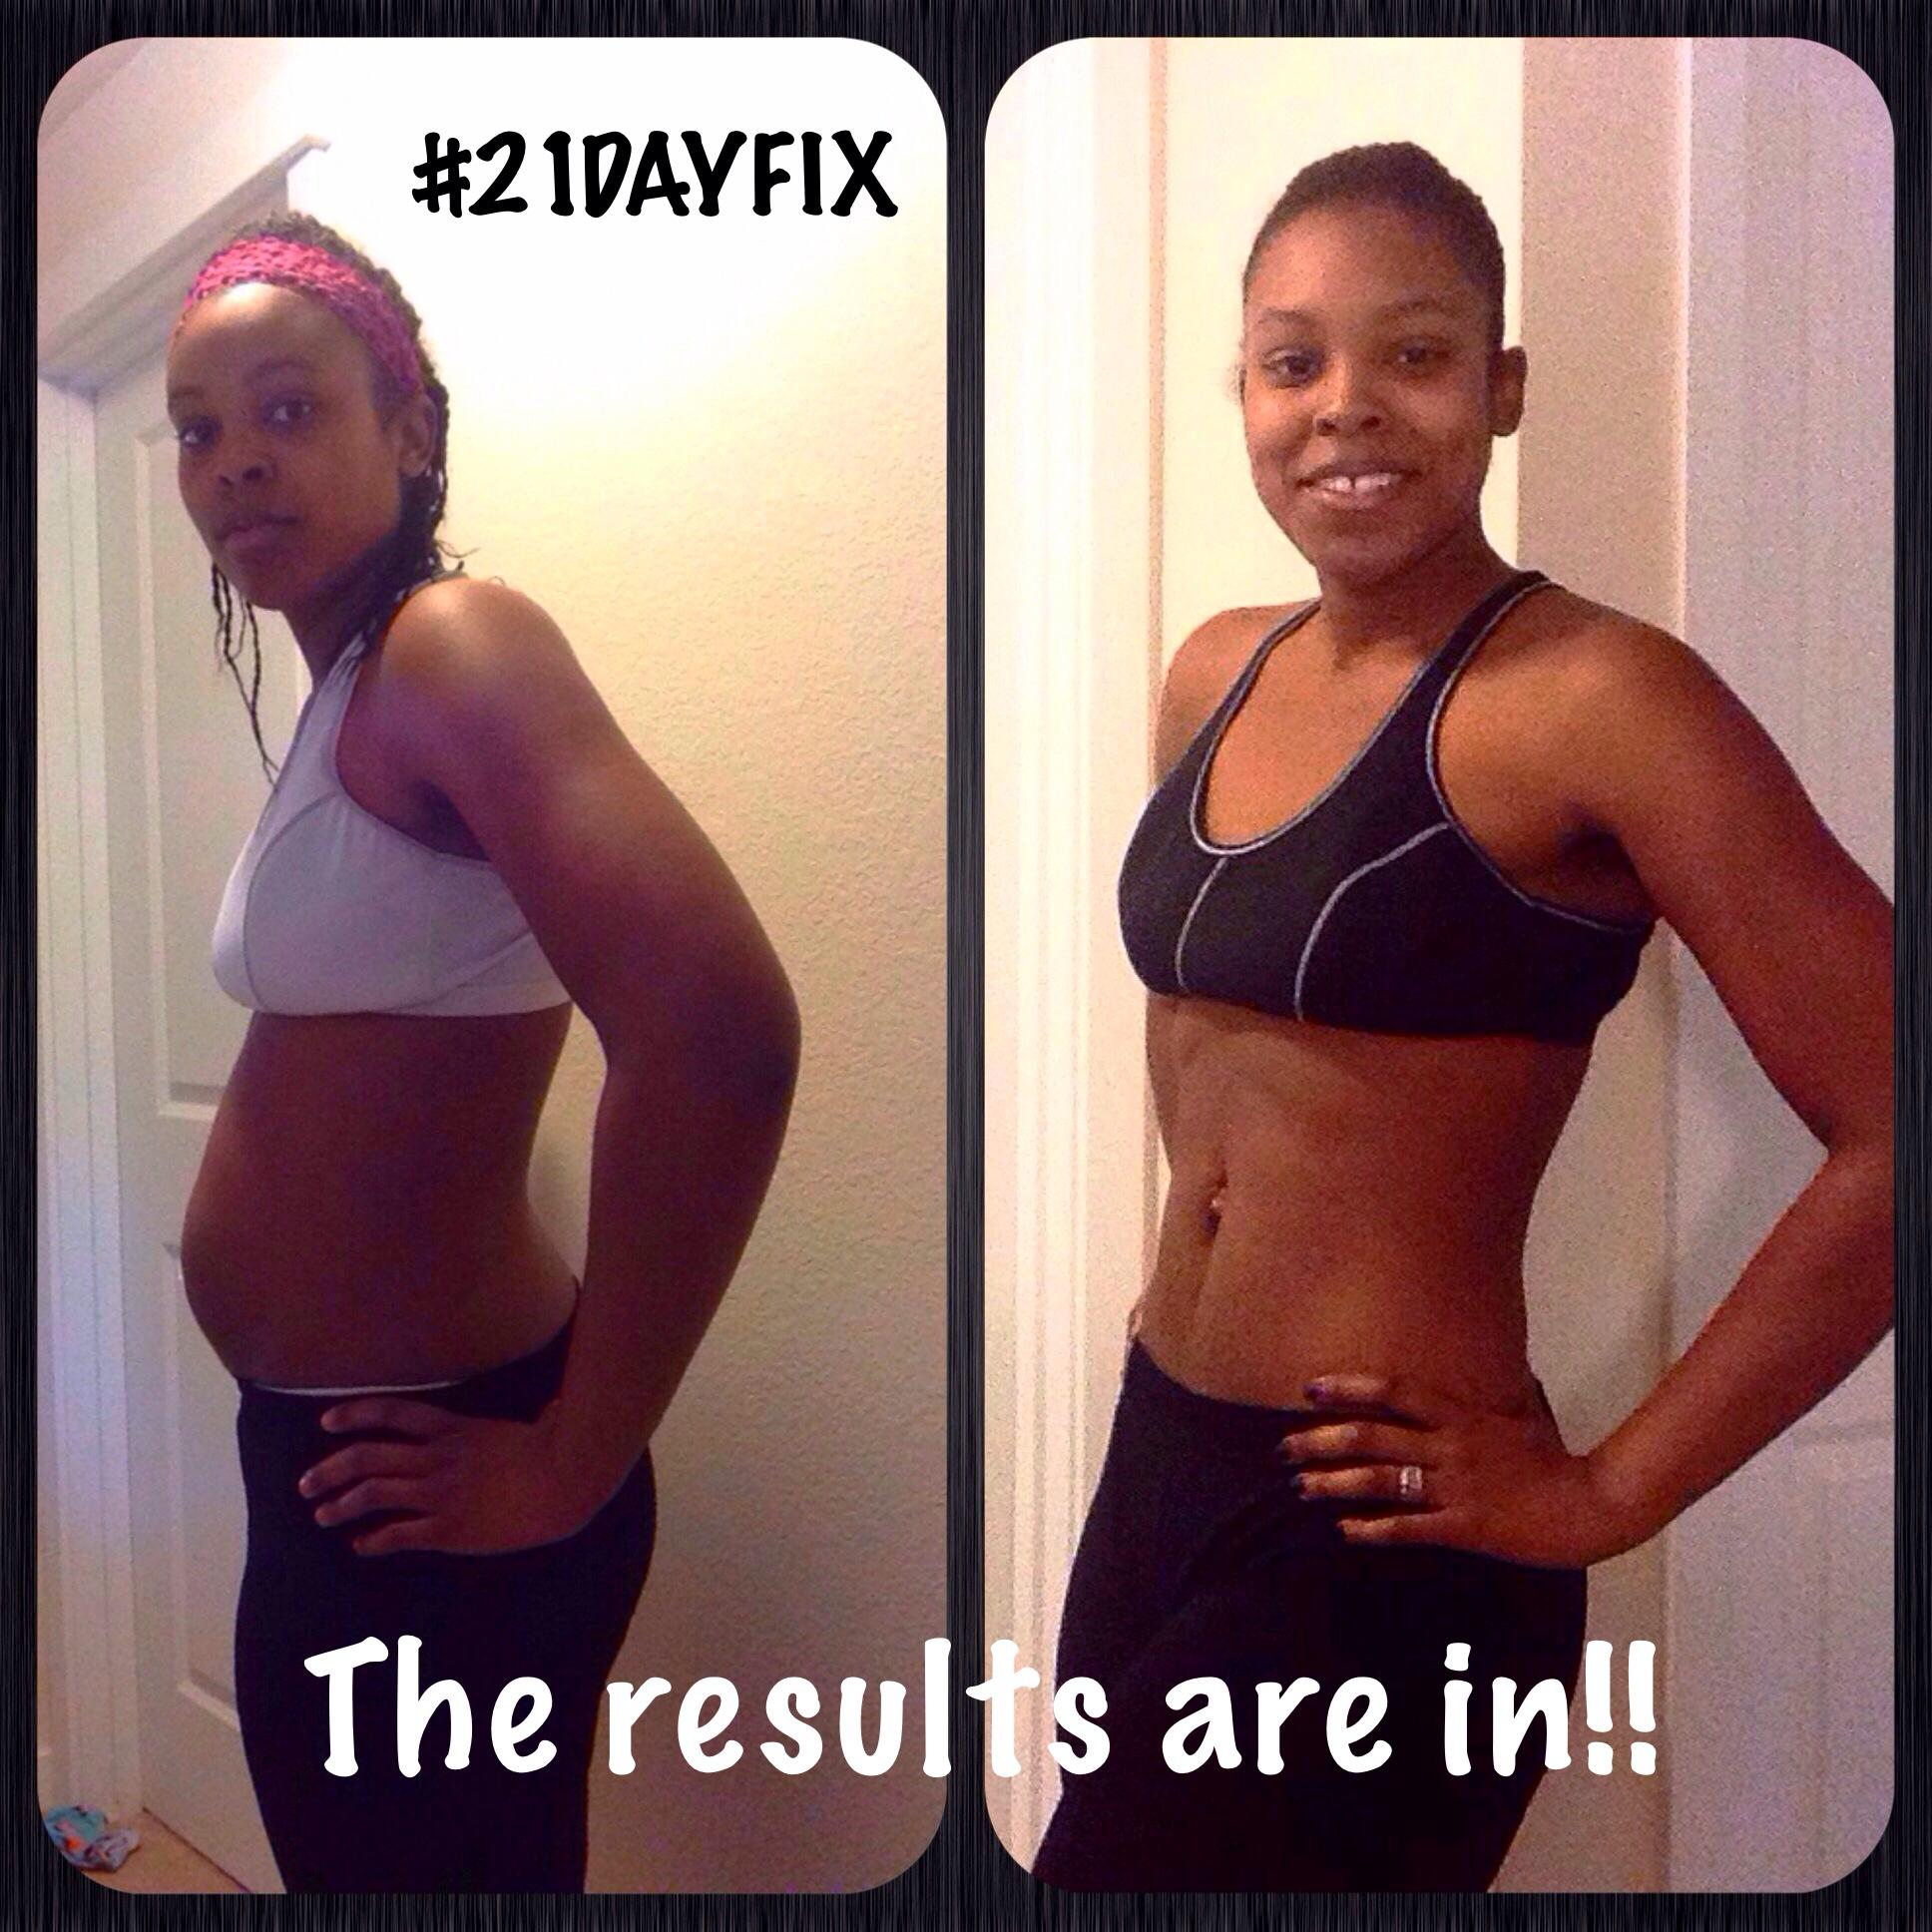 Does the 21 Day Fix Work